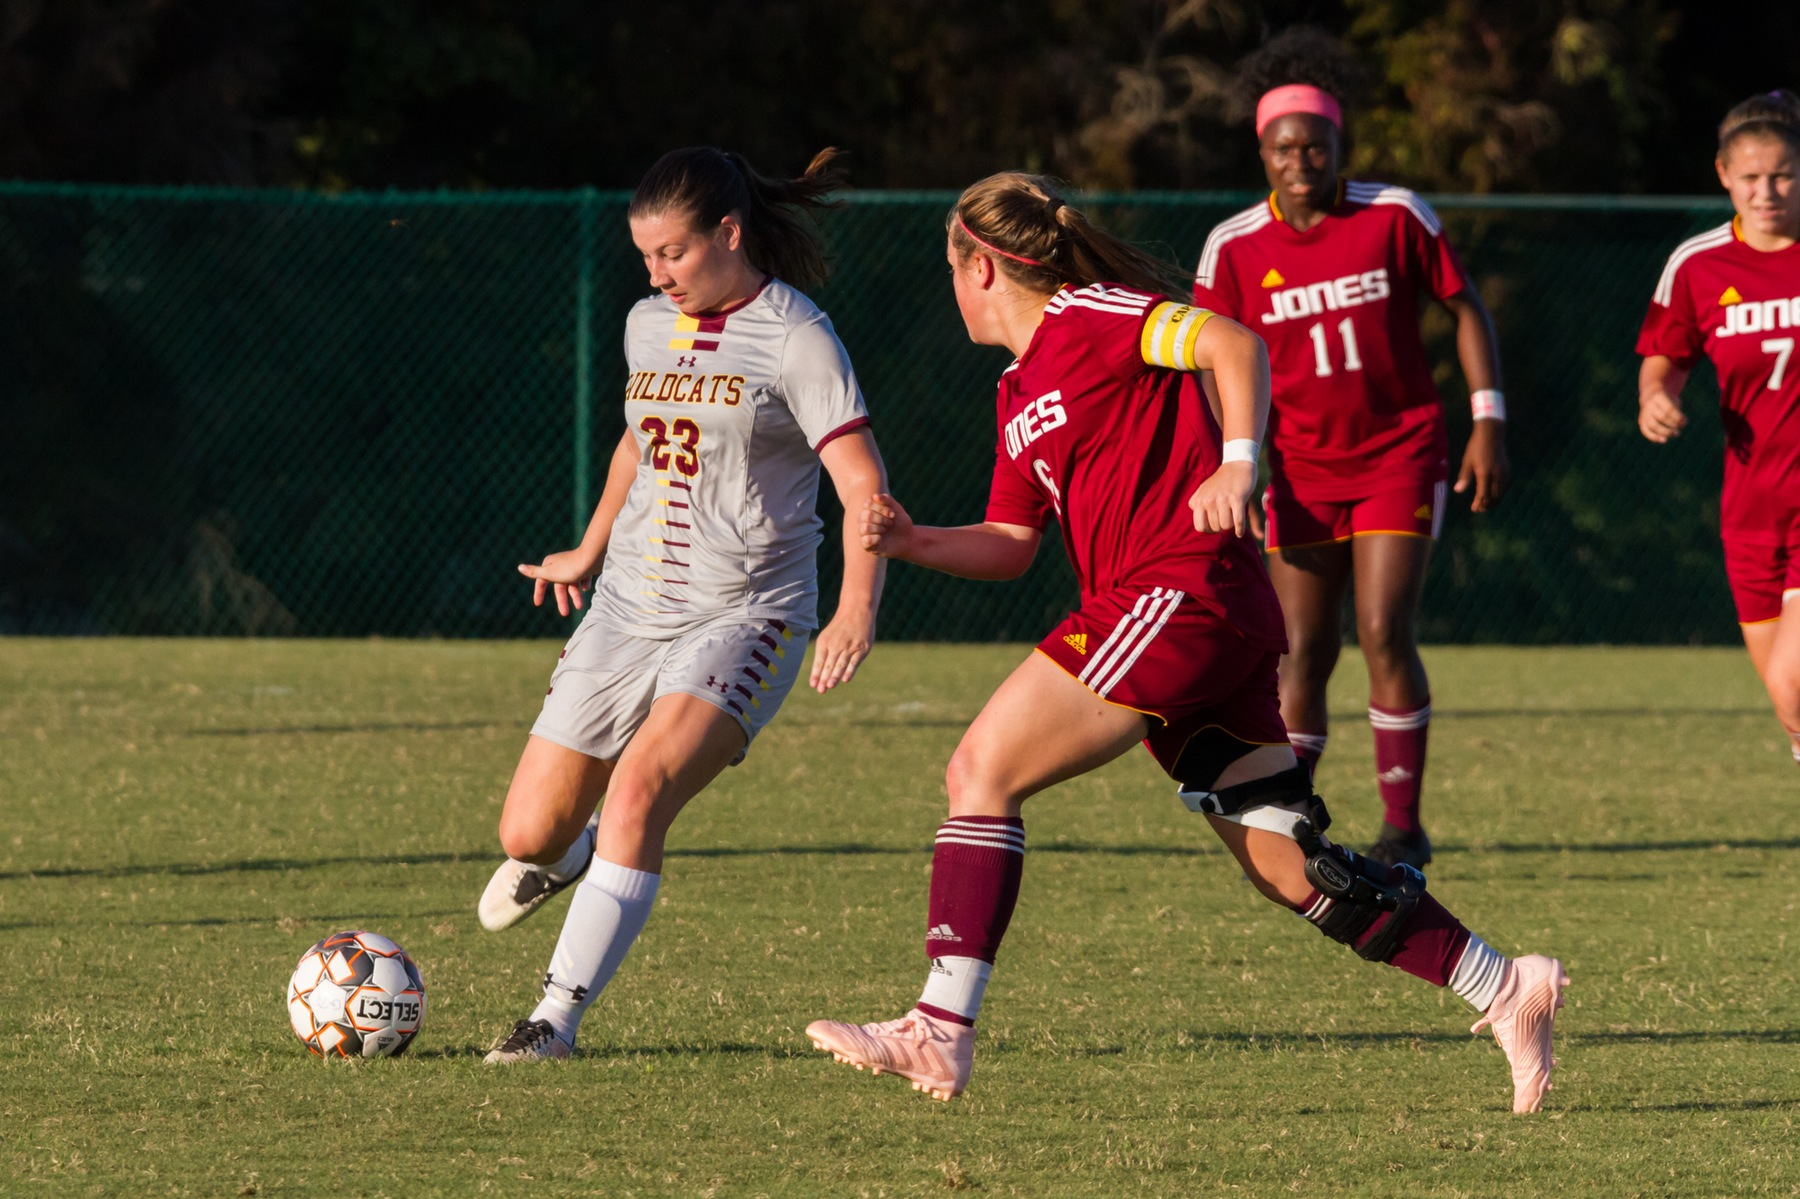 Lady Wildcats take on Jones in MACJC semifinals